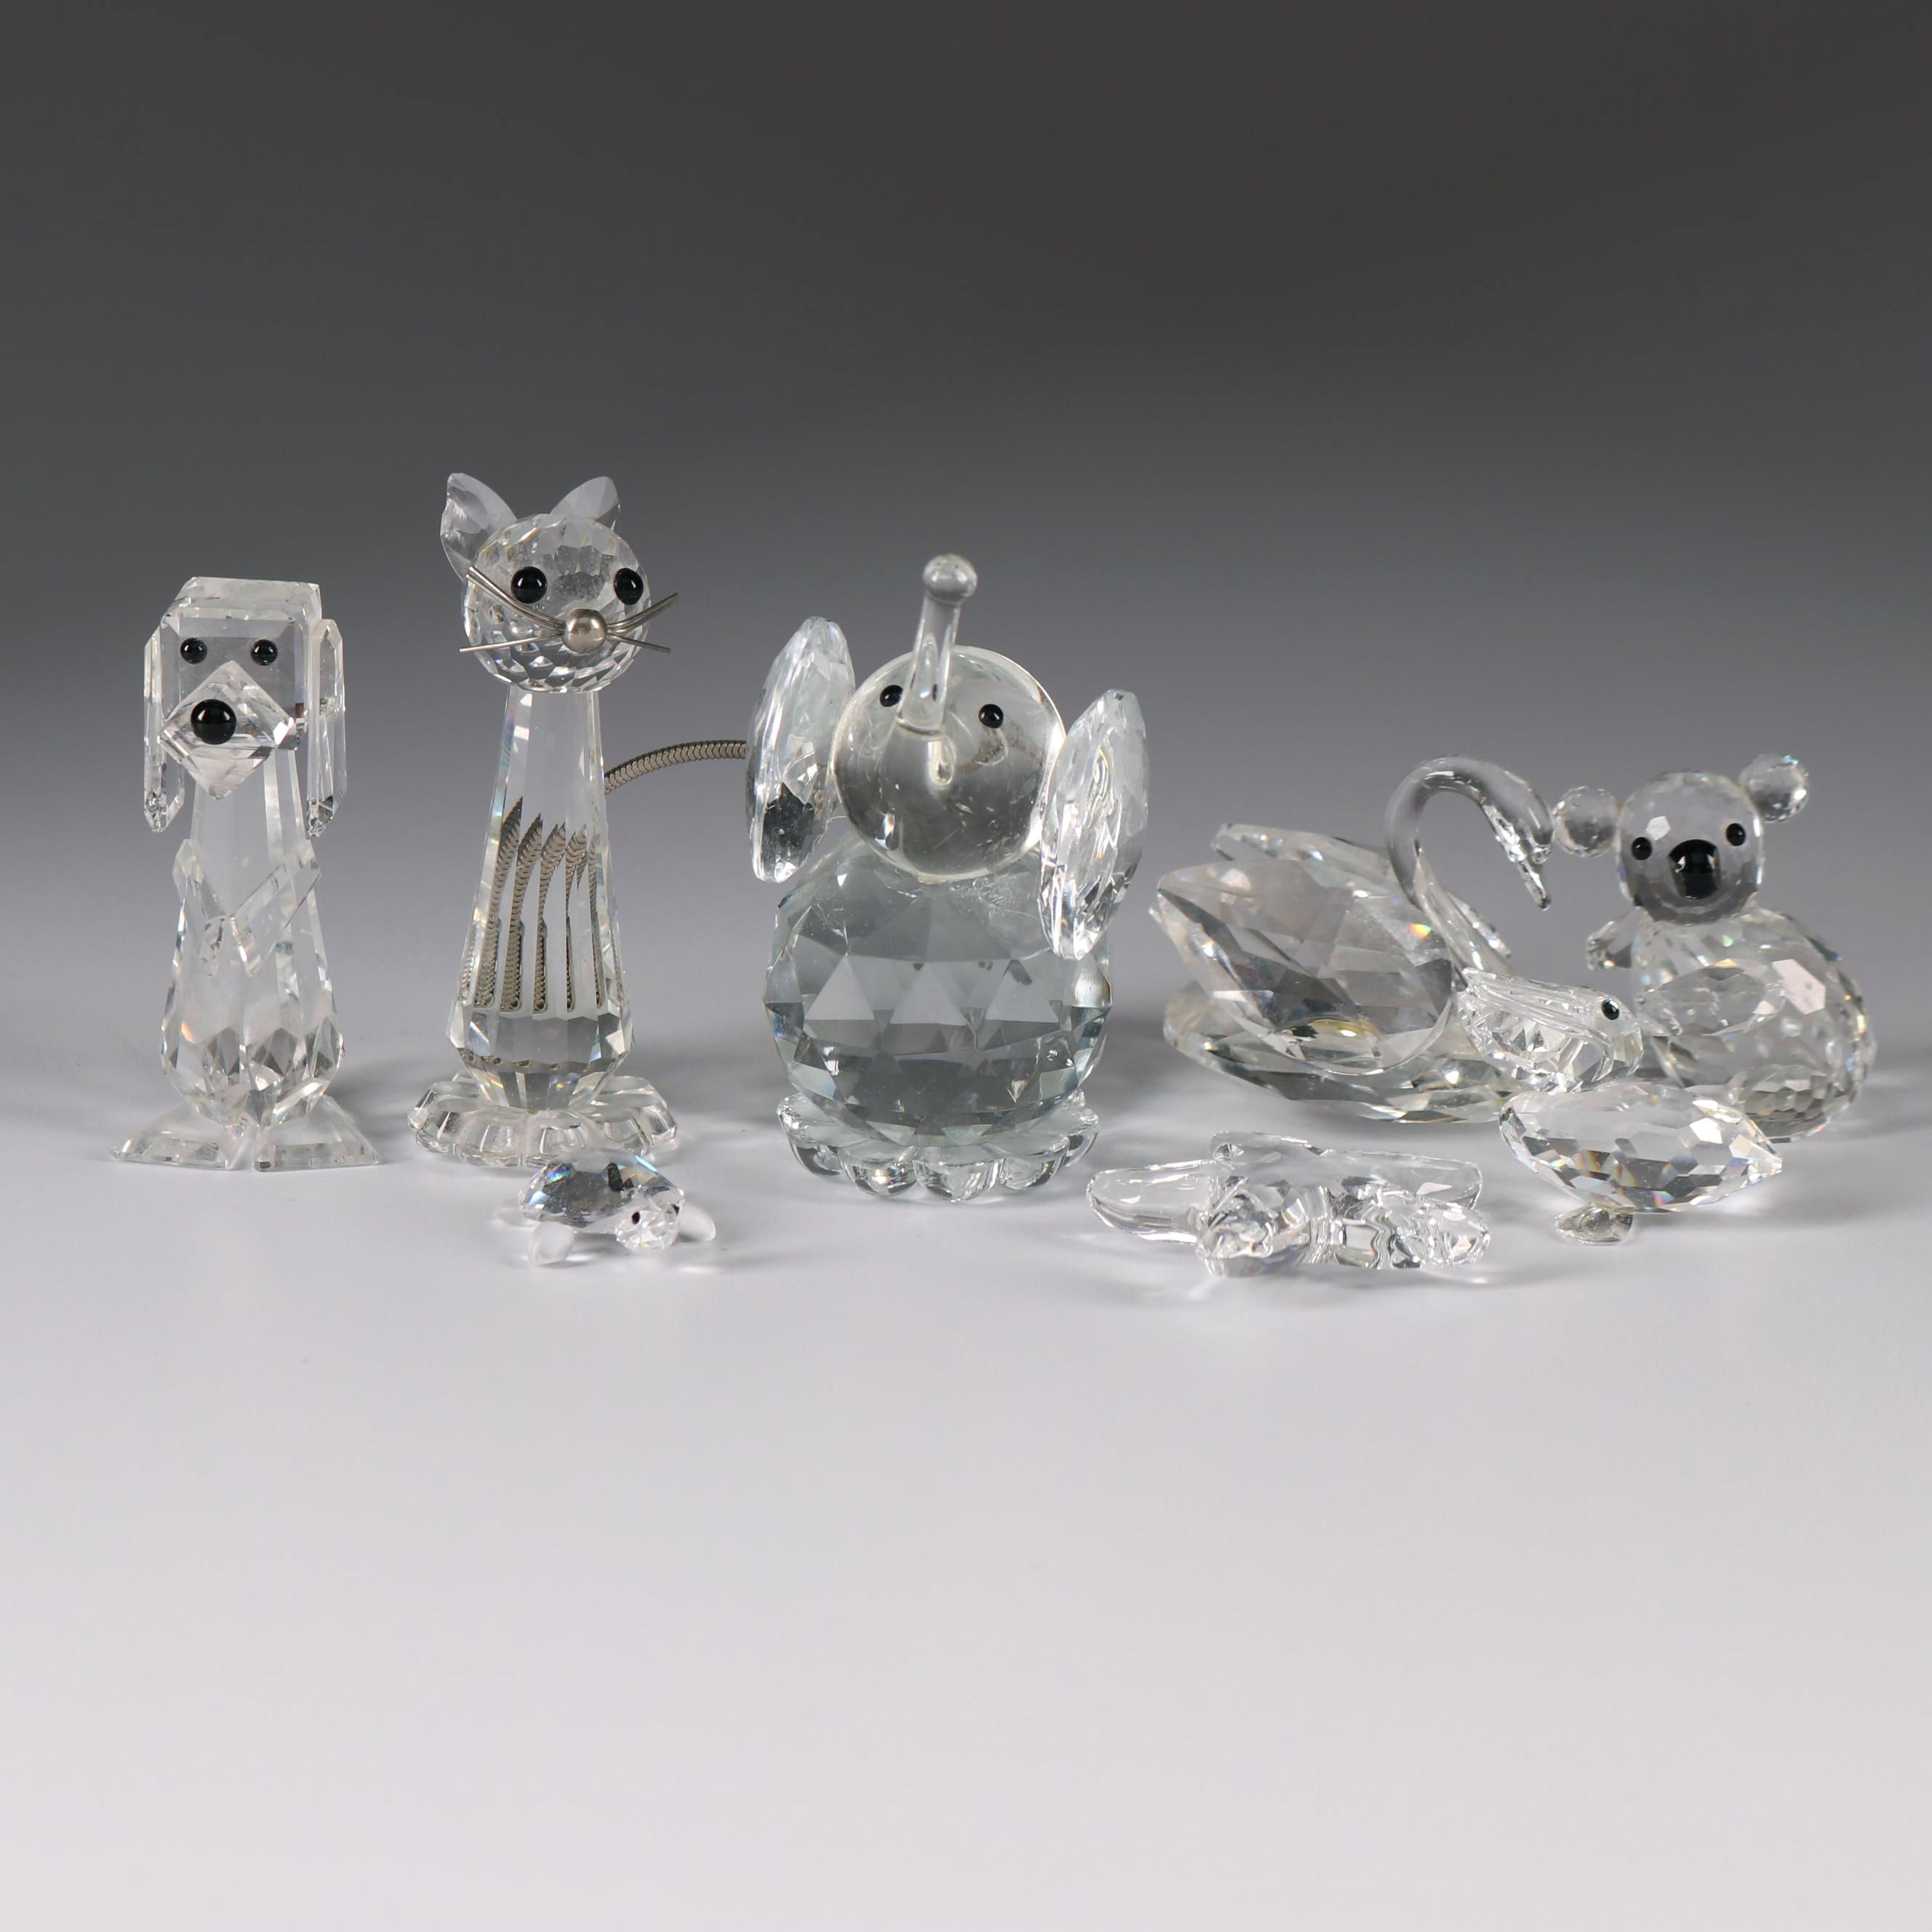 Swarovski Lead Glass Animal Figurines, Late 20th Century